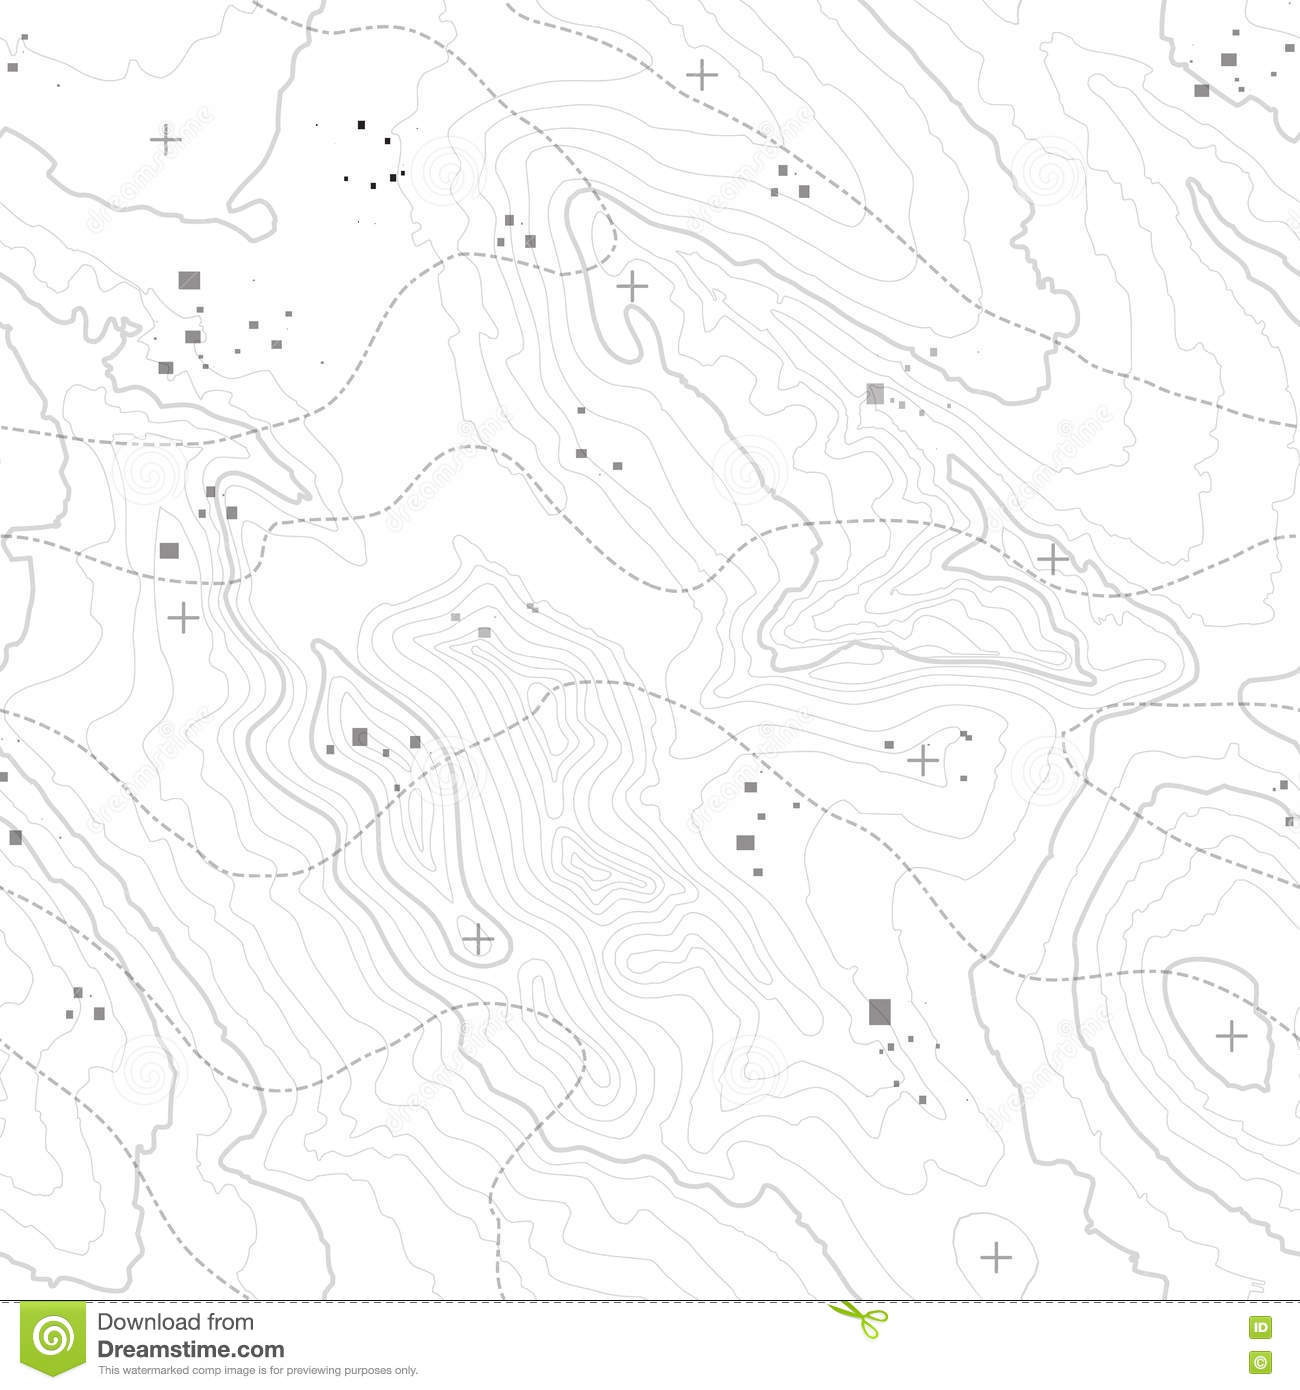 Topographic Map Background Concept With Space For Your Copy